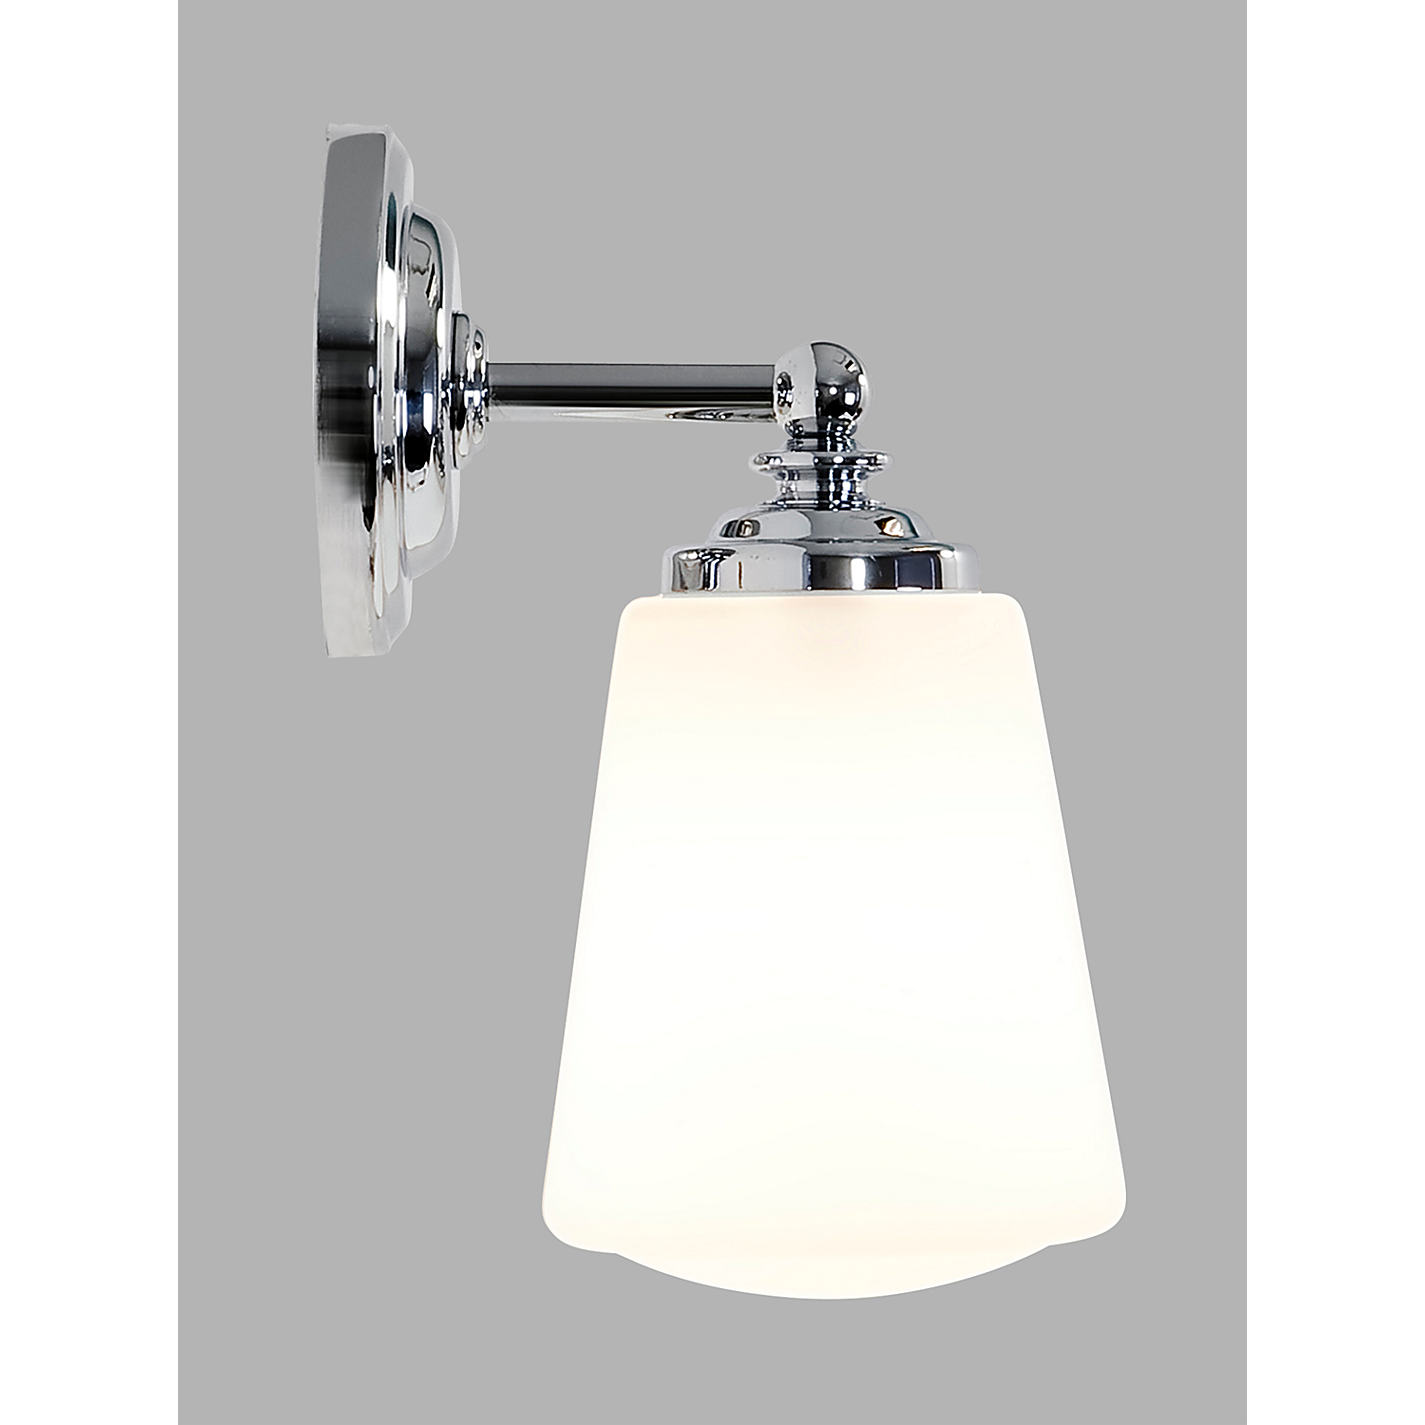 Wall lights for bathrooms - Buy Astro Anton Bathroom Wall Light Online At Johnlewis Com